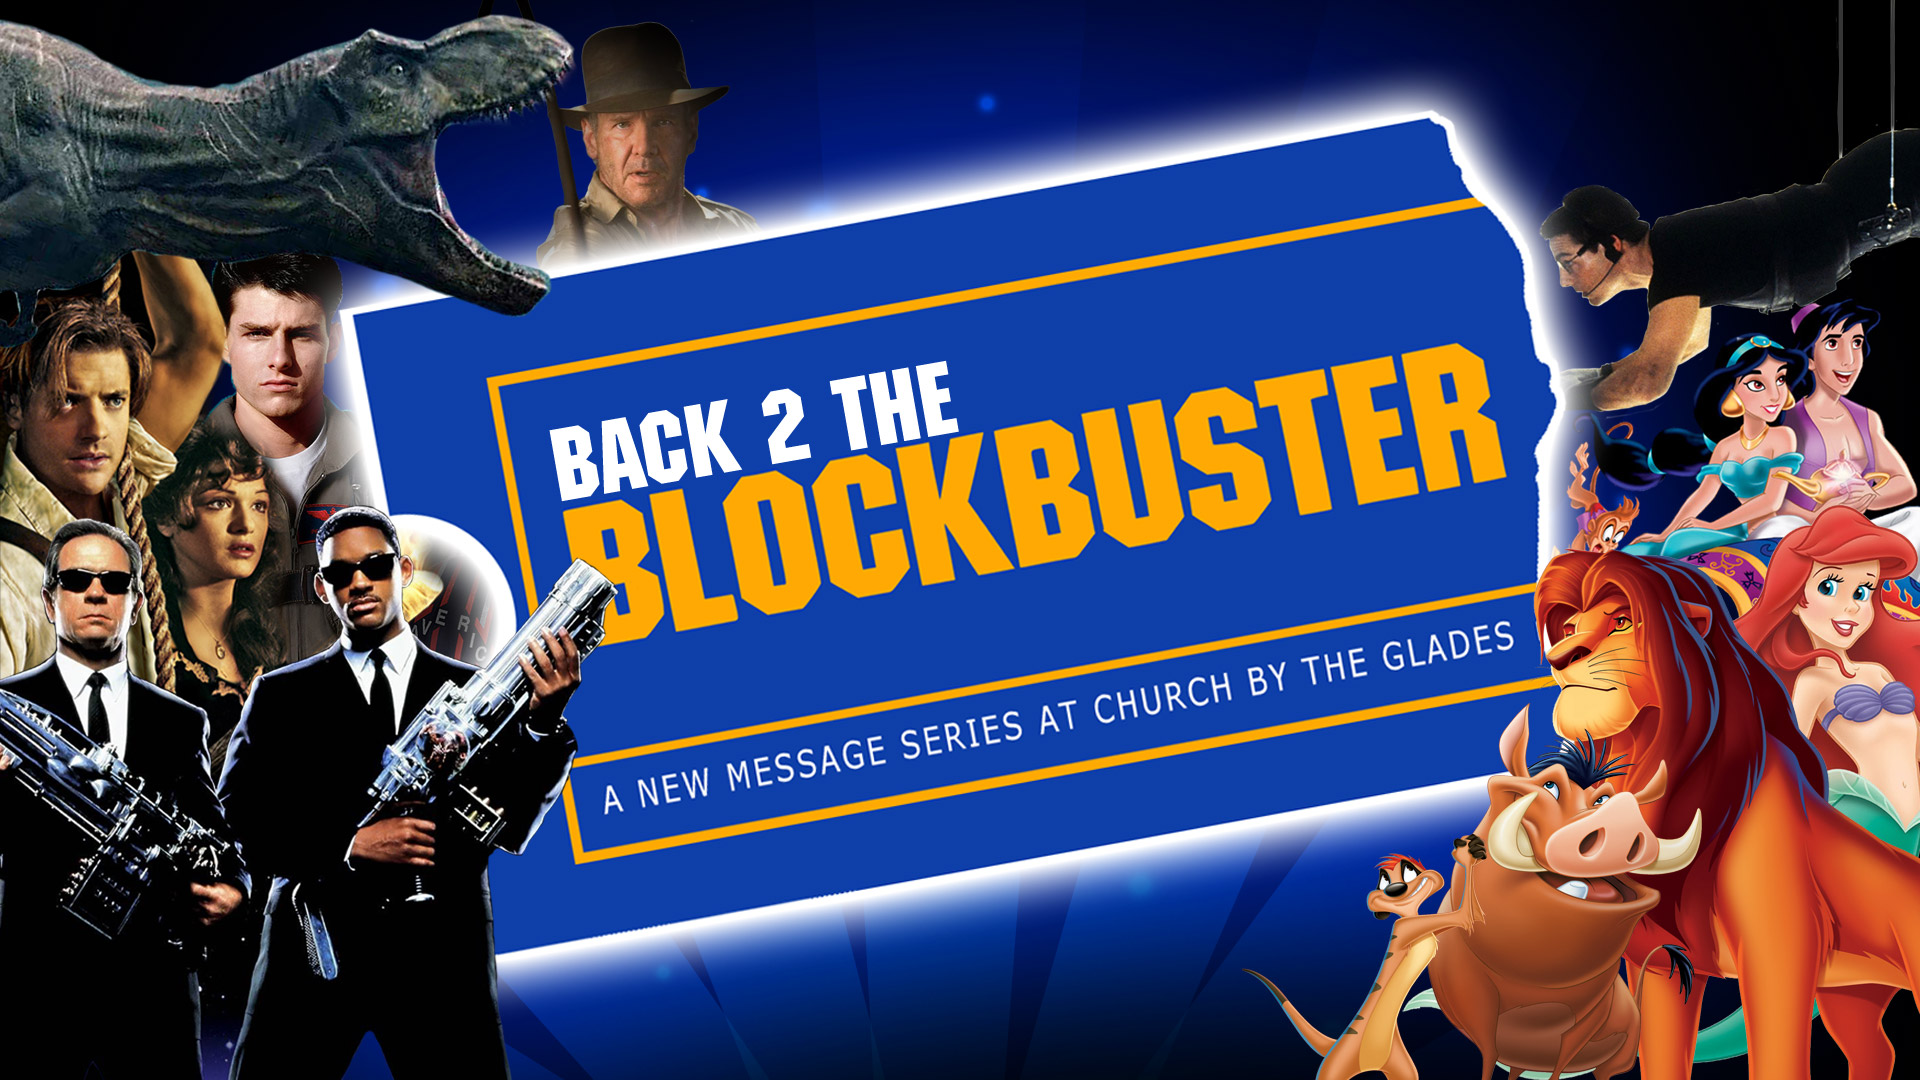 Back 2 the Blockbuster